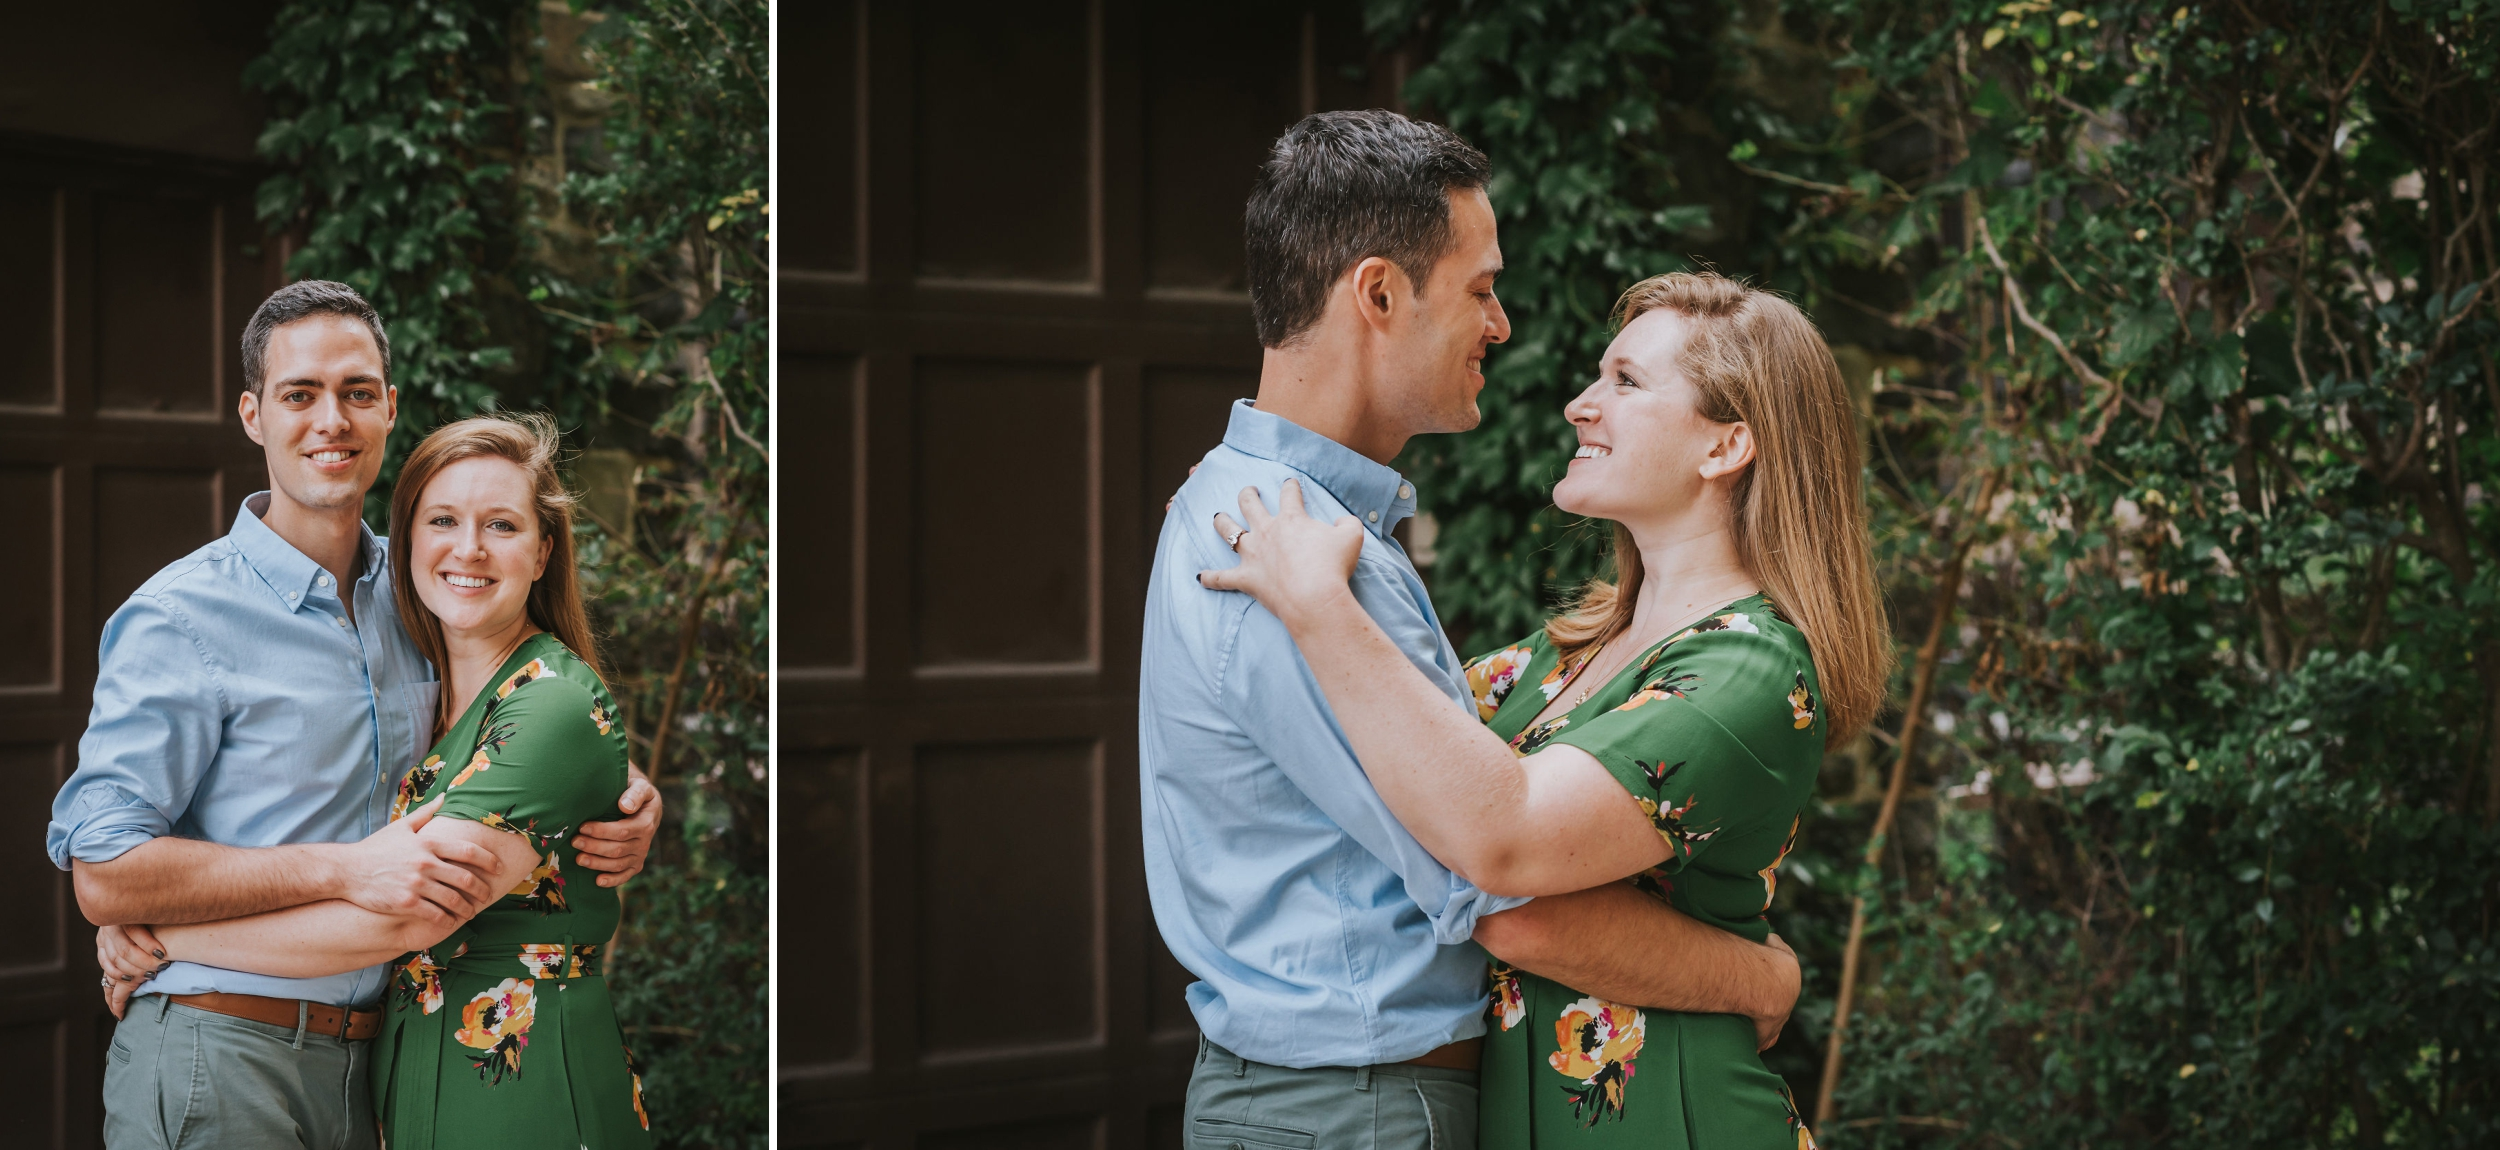 Abigail and Andrew Forest Hills Gardens Engagement NYC 04.jpg